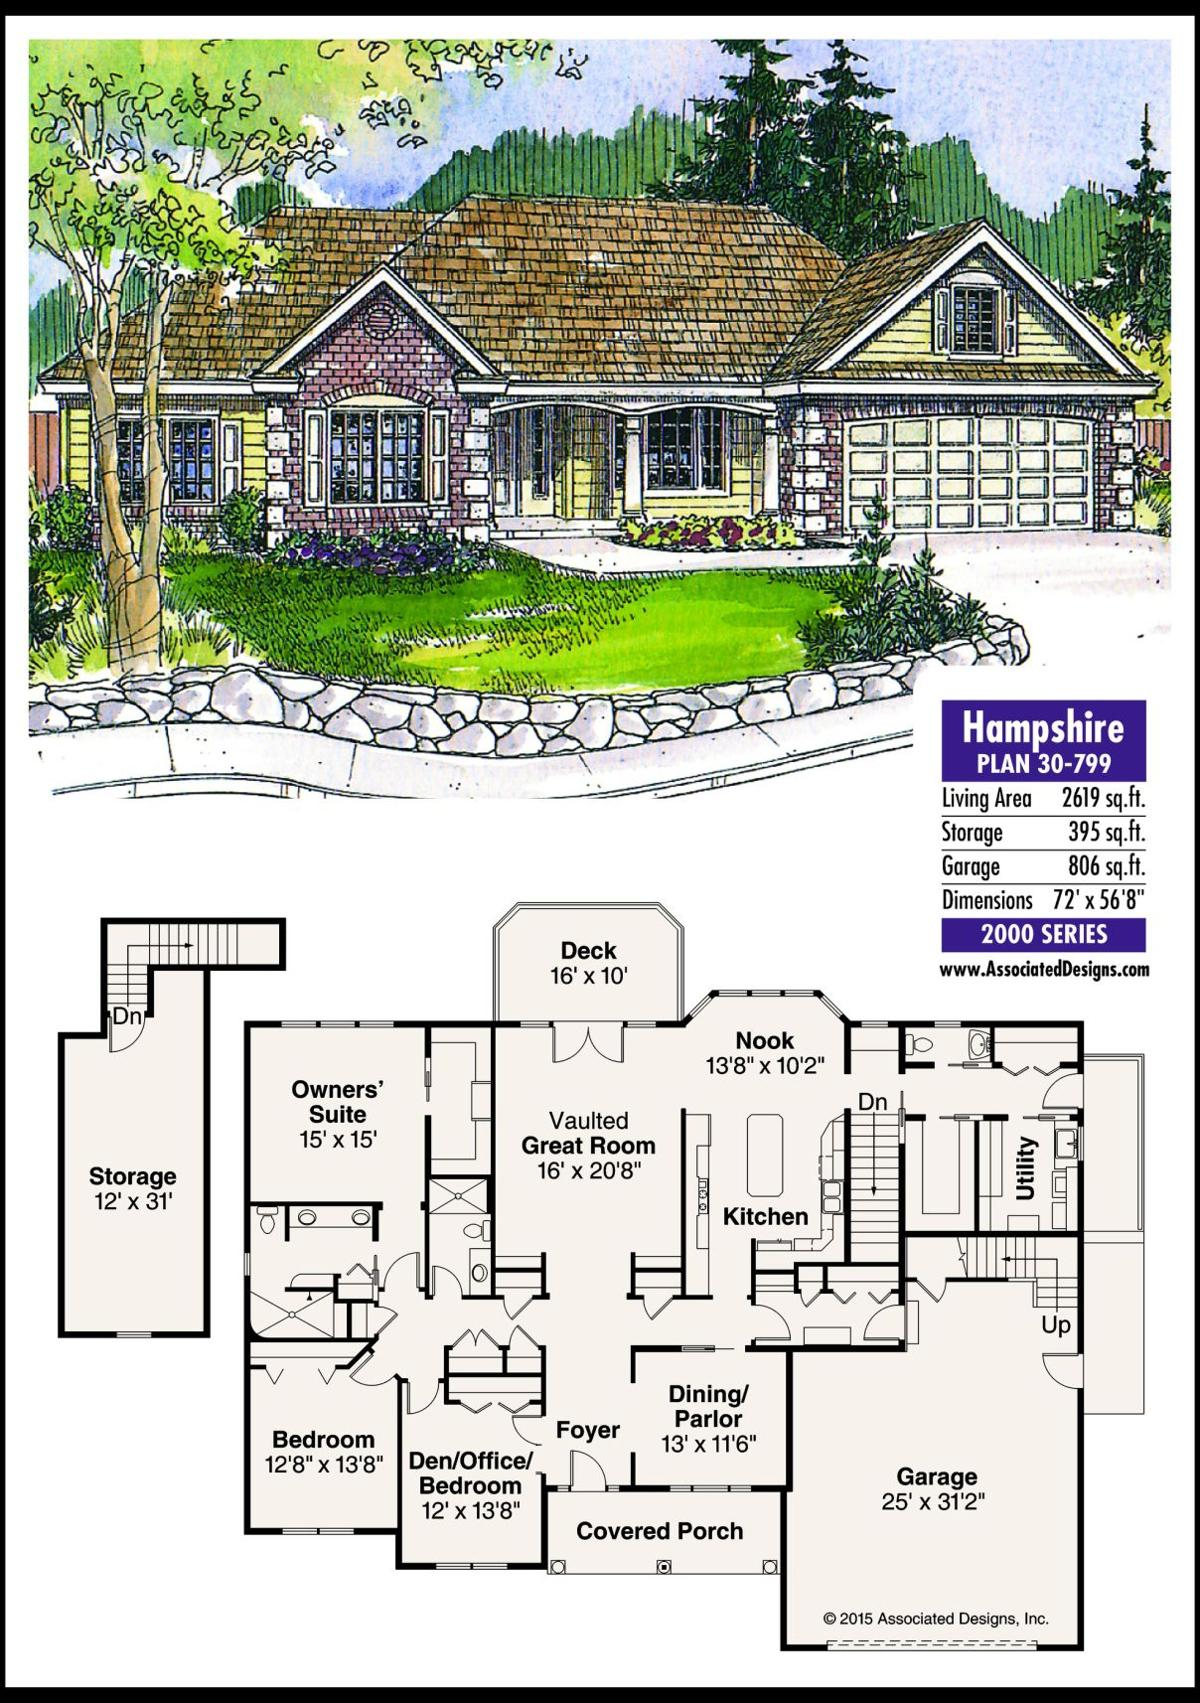 This week's house plan Hampshire 30-799